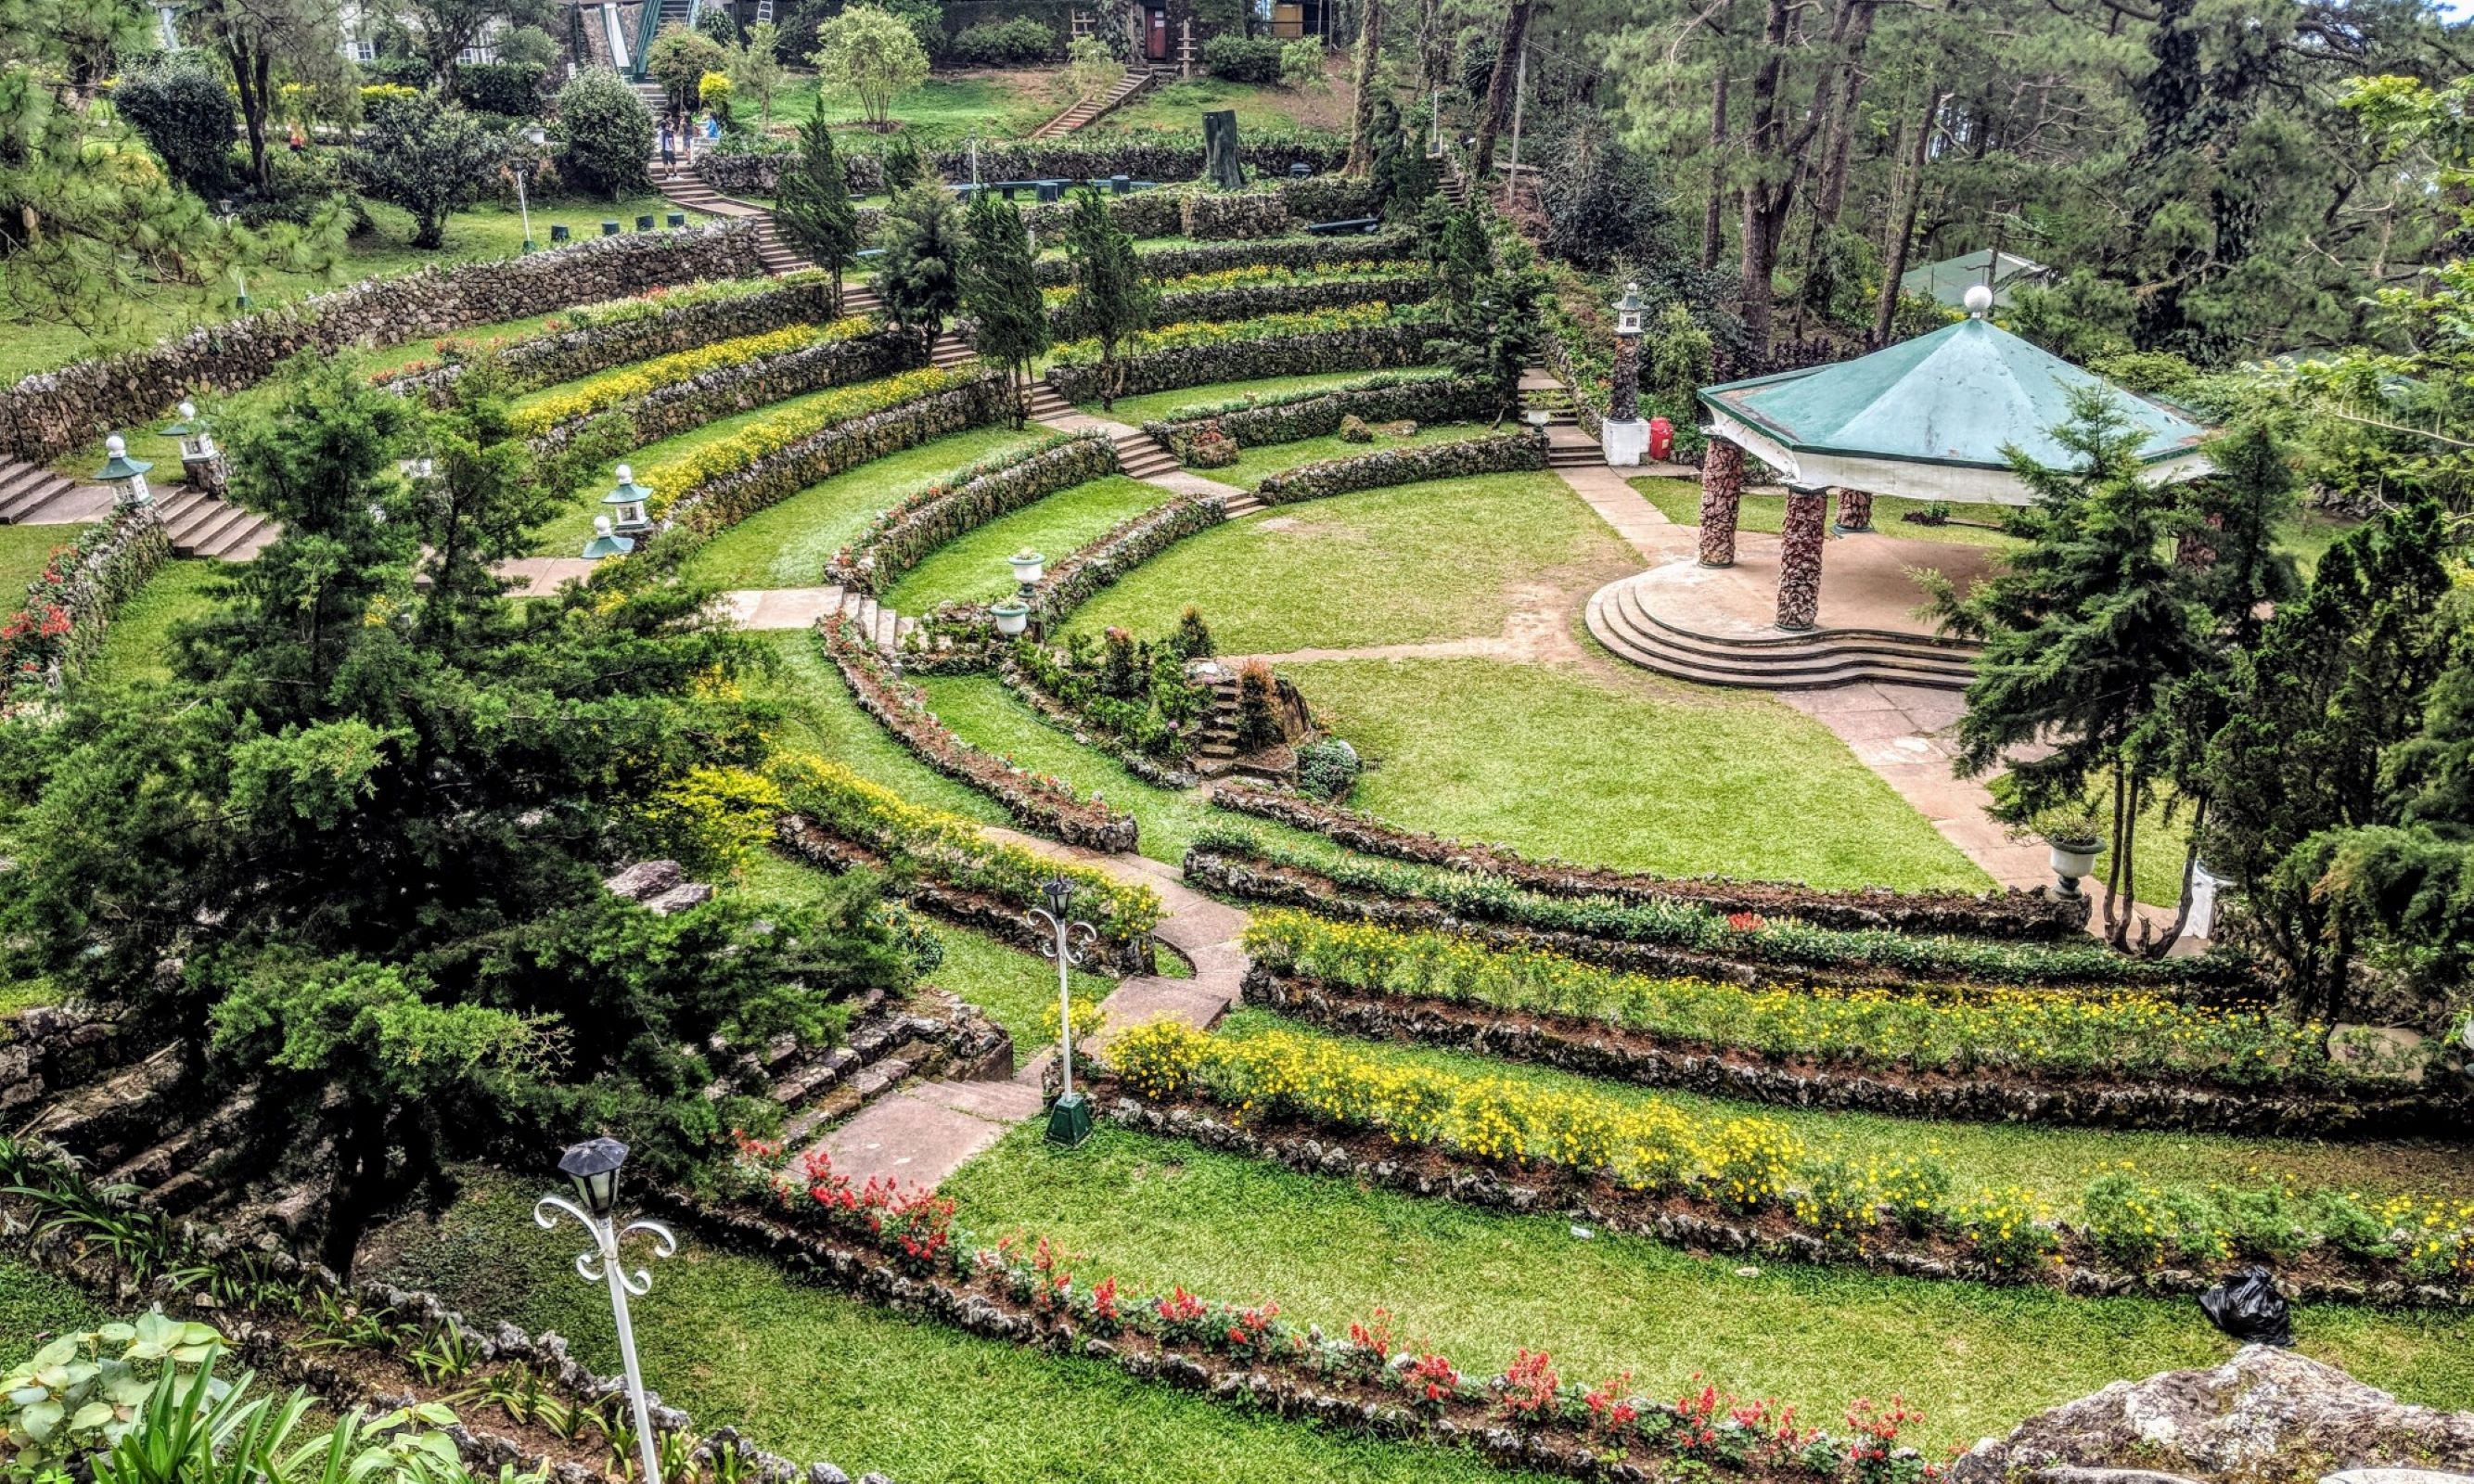 Baguio City Full-Day Sightseeing | With Transfers from Manila